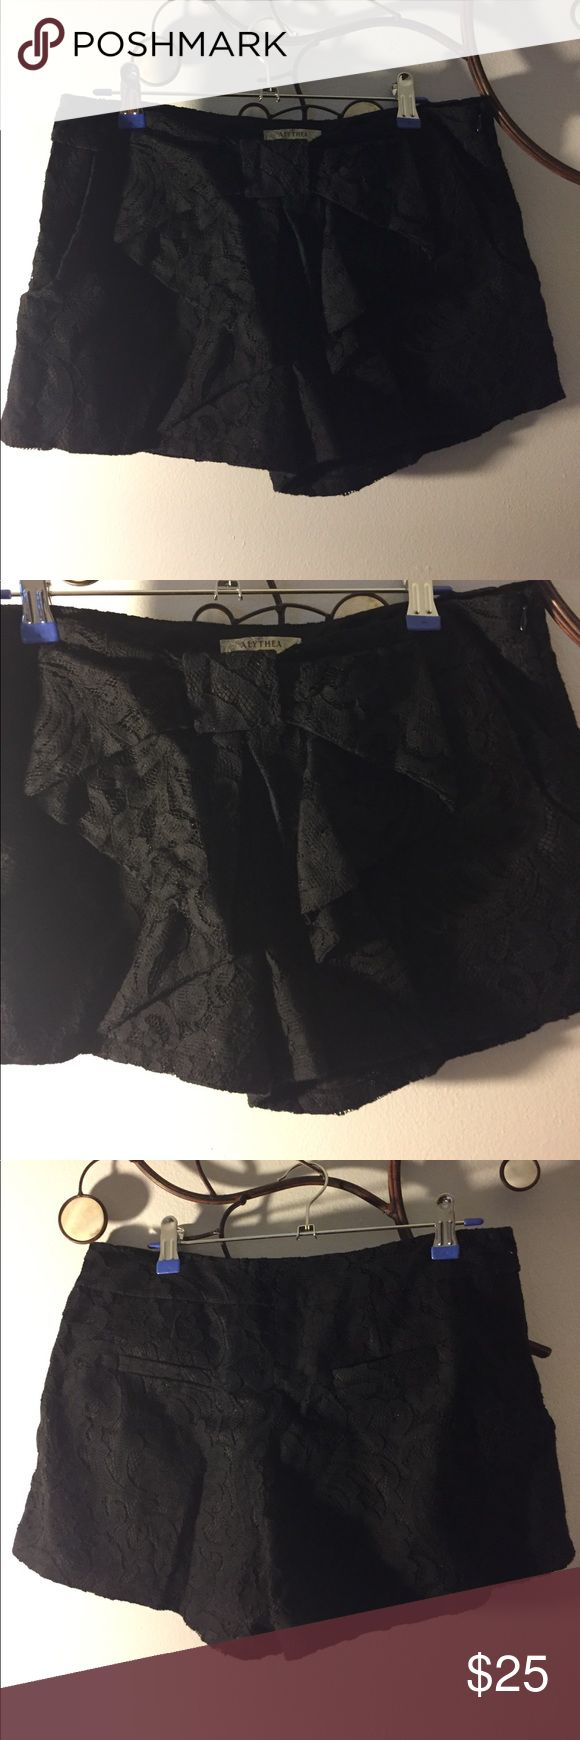 Black Lace shorts with bow Black lace shorts,lining no stretch with bow stitched on front of shorts. No trades. Pair with a wife beater or crop top. Alythea Shorts Bermudas